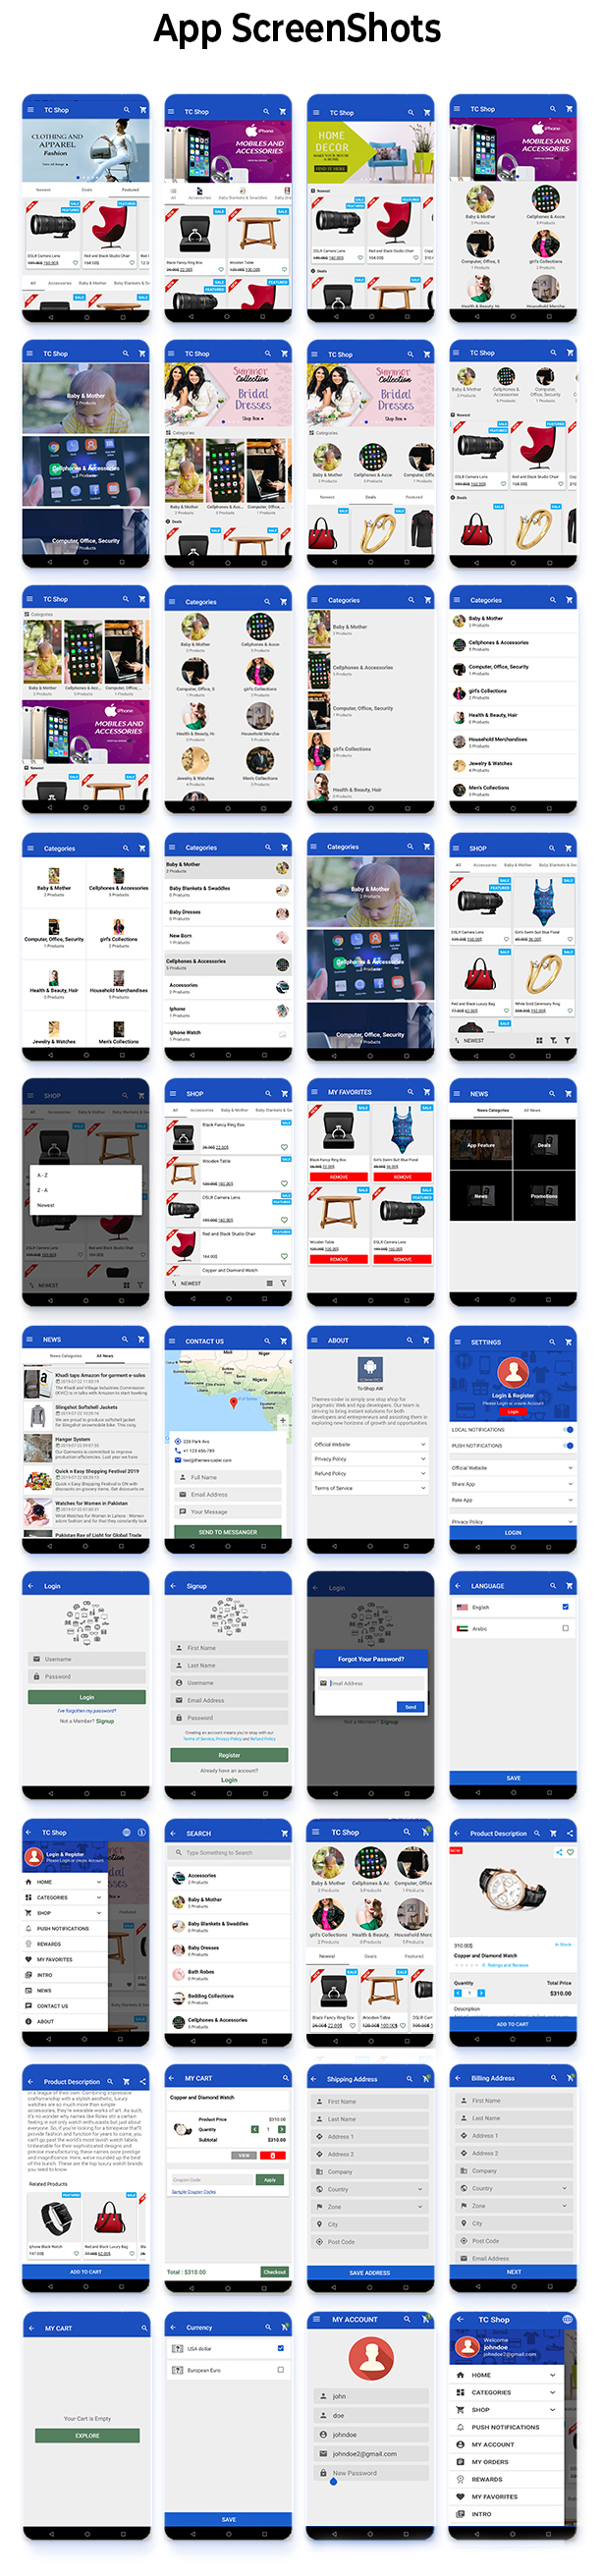 Android Woocommerce - Universal Native Android Ecommerce / Store Full Mobile Application - 9